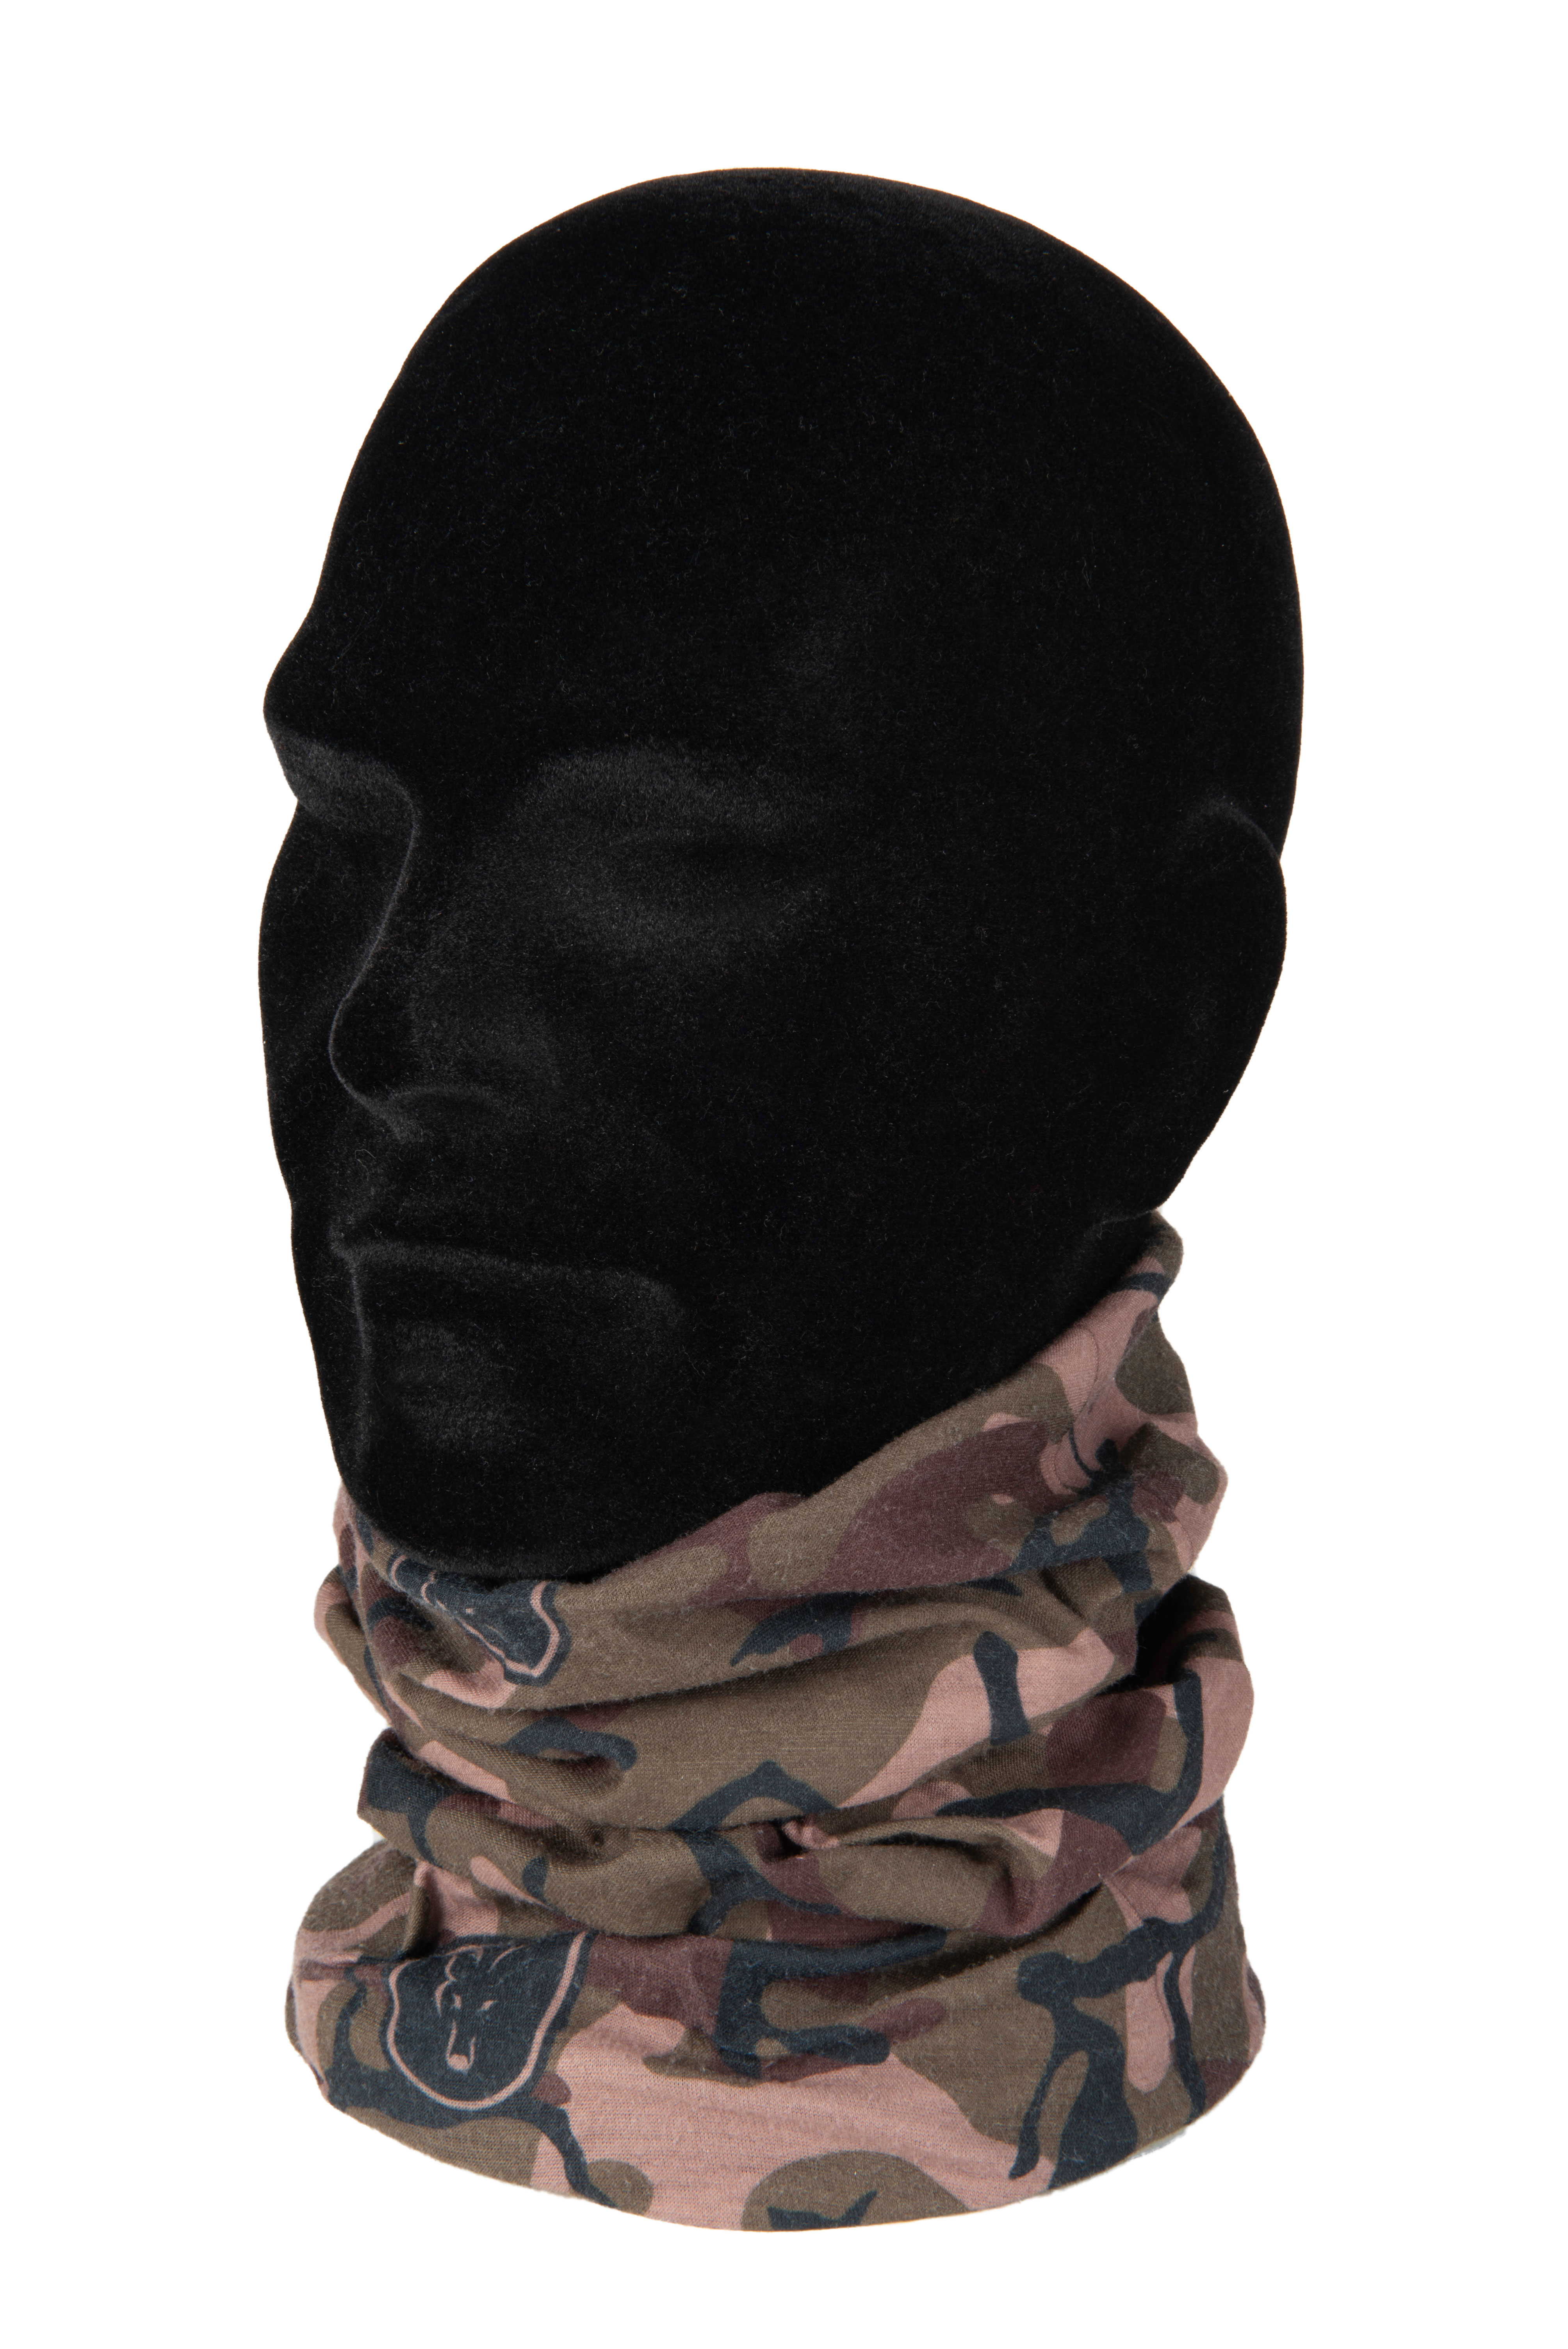 chh008_fox_camo_snood_mainjpg